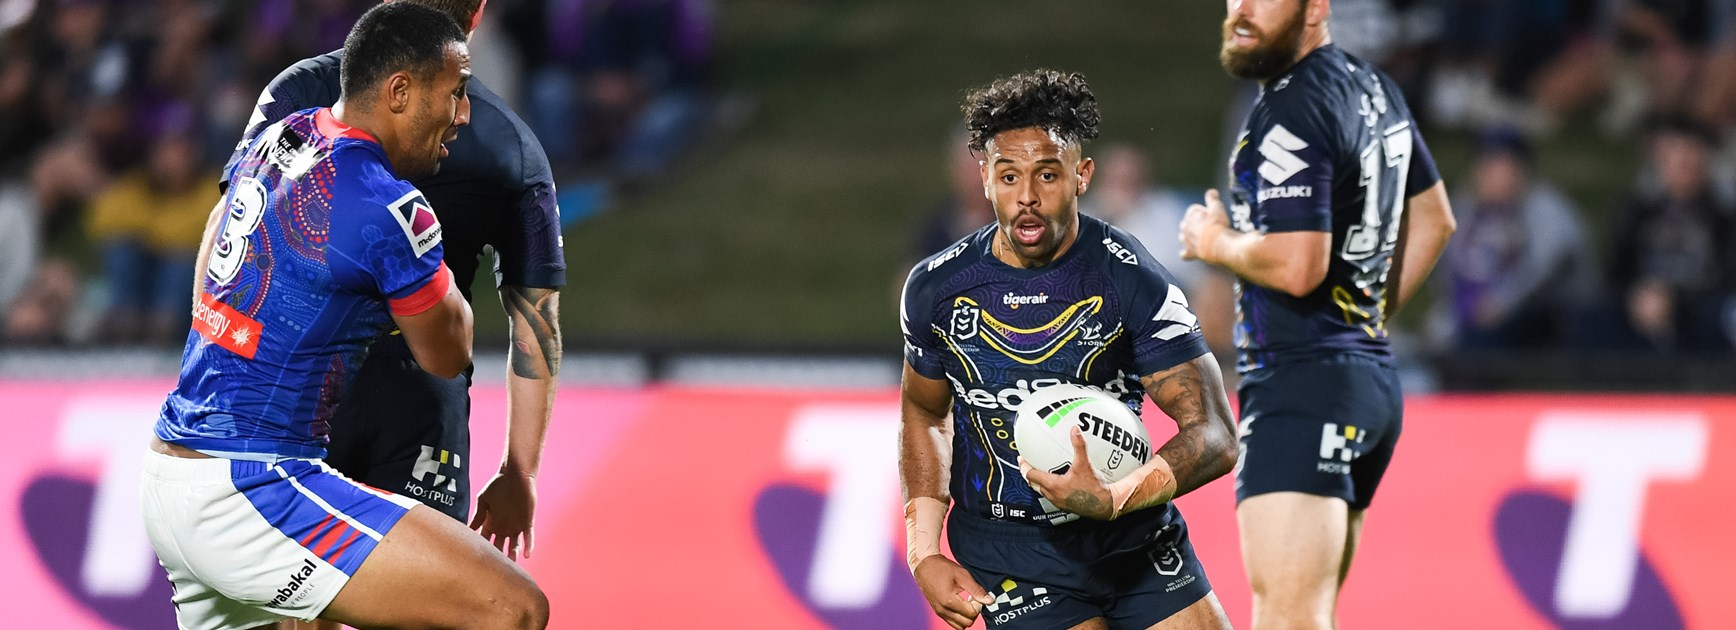 'Pop would be proud as punch': Wally Carr's fighting spirit inspires Storm